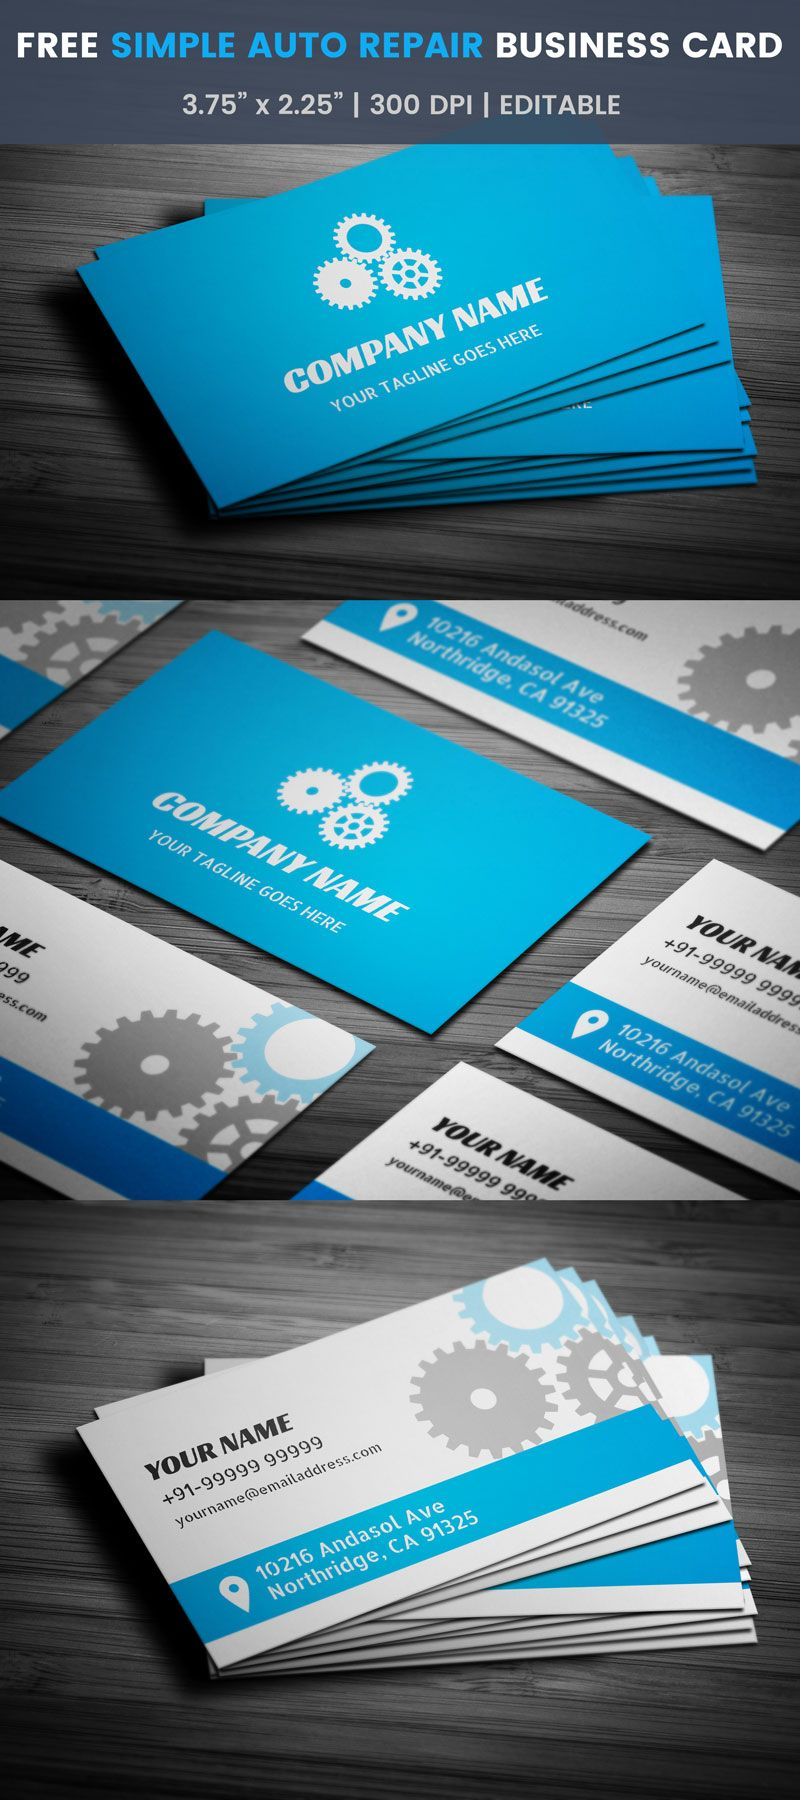 Simple Auto Repair Business Card - Full Preview | Free Business Card ...